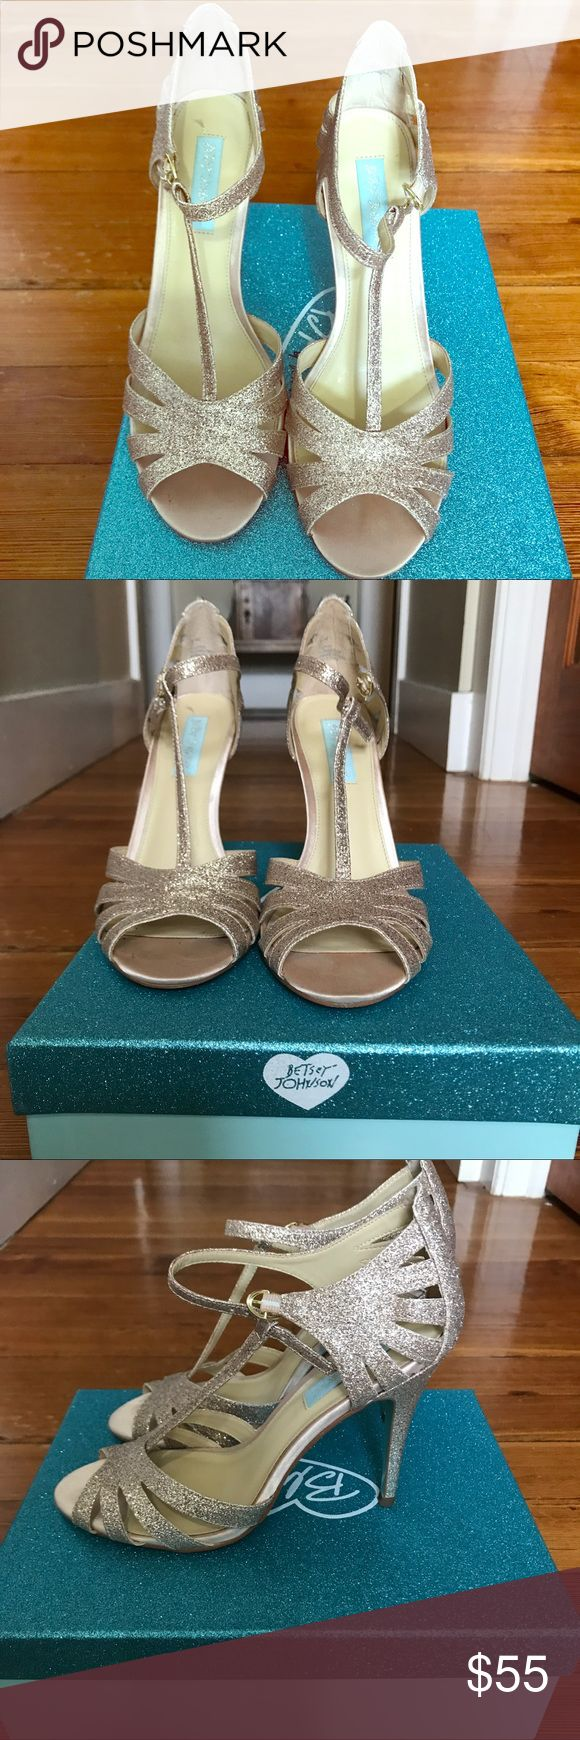 """Blue by Betsey Johnson - Champagne Colored Heels Worn once. Like new, excellent condition. Scuff marks on the bottom of the shoe only (pictured). Comfortable 4"""" covered heel. Beautiful shoe for a wedding or event! Betsey Johnson Shoes Heels"""